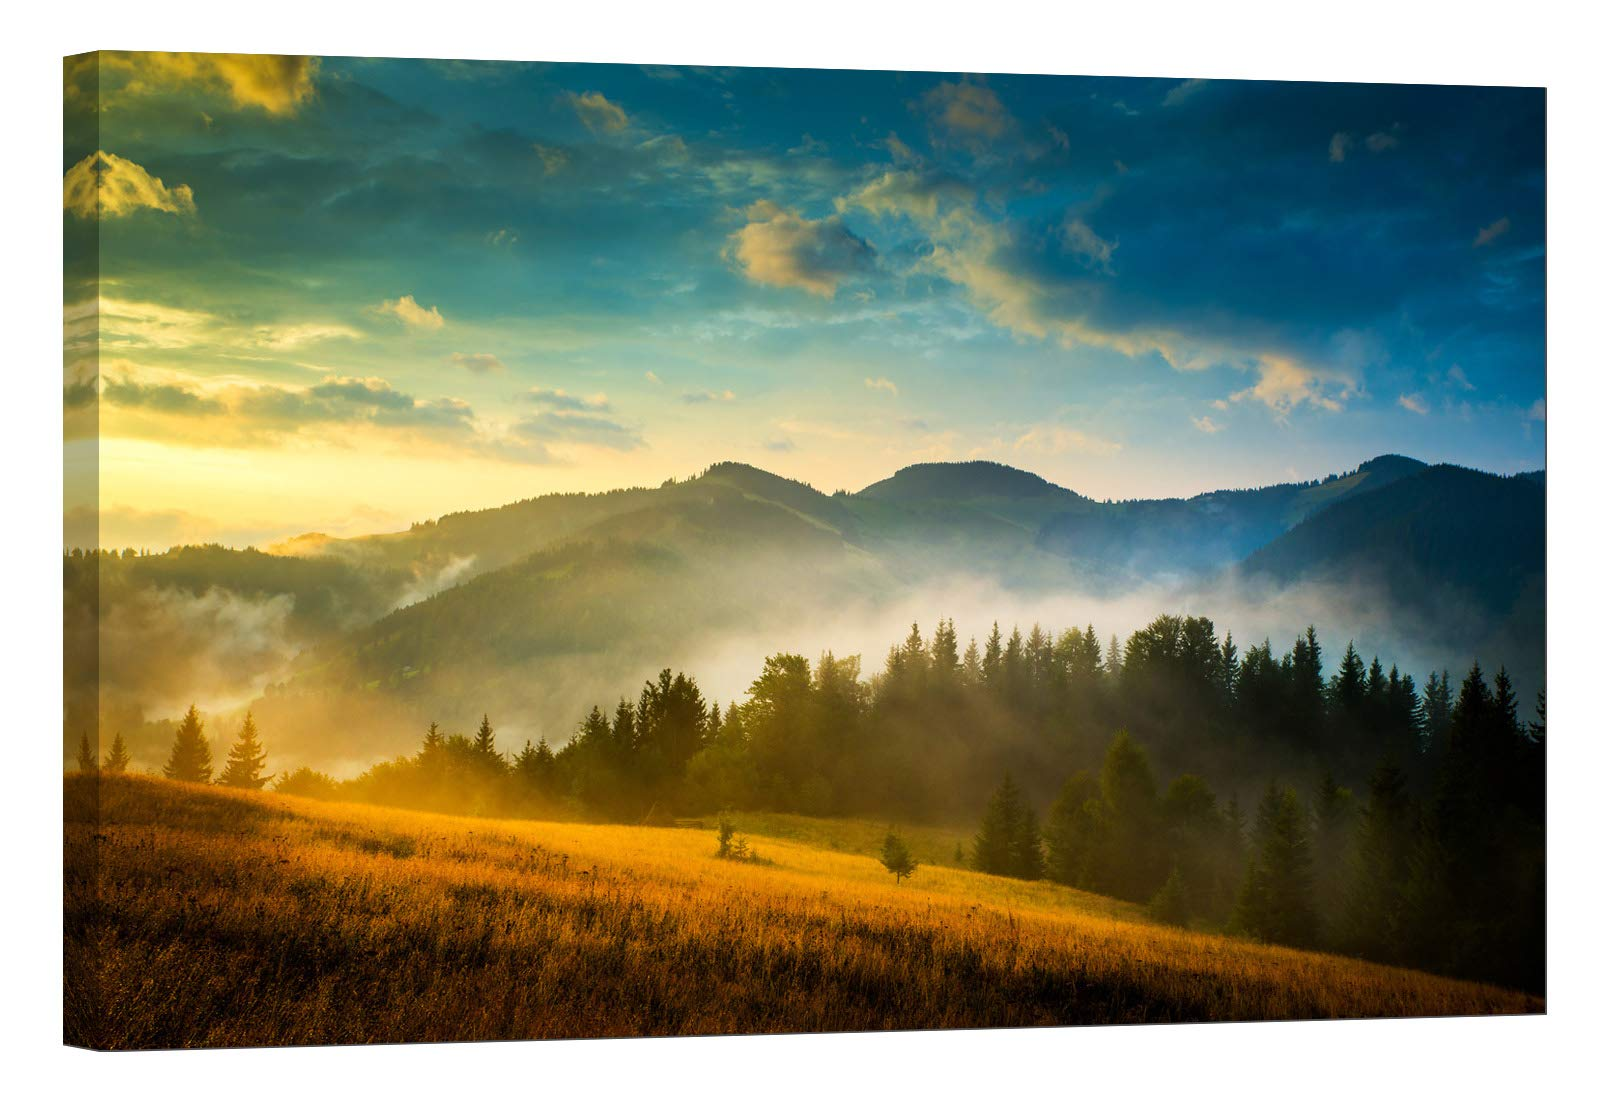 LightFairy Wall Art for Living Room - Glow in The Dark Canvas Painting - Stretched and Framed Giclee Print - Landscape Field Mountain Carpathian Alps - Wall Decorations for Bedroom - 24 x 16 inch